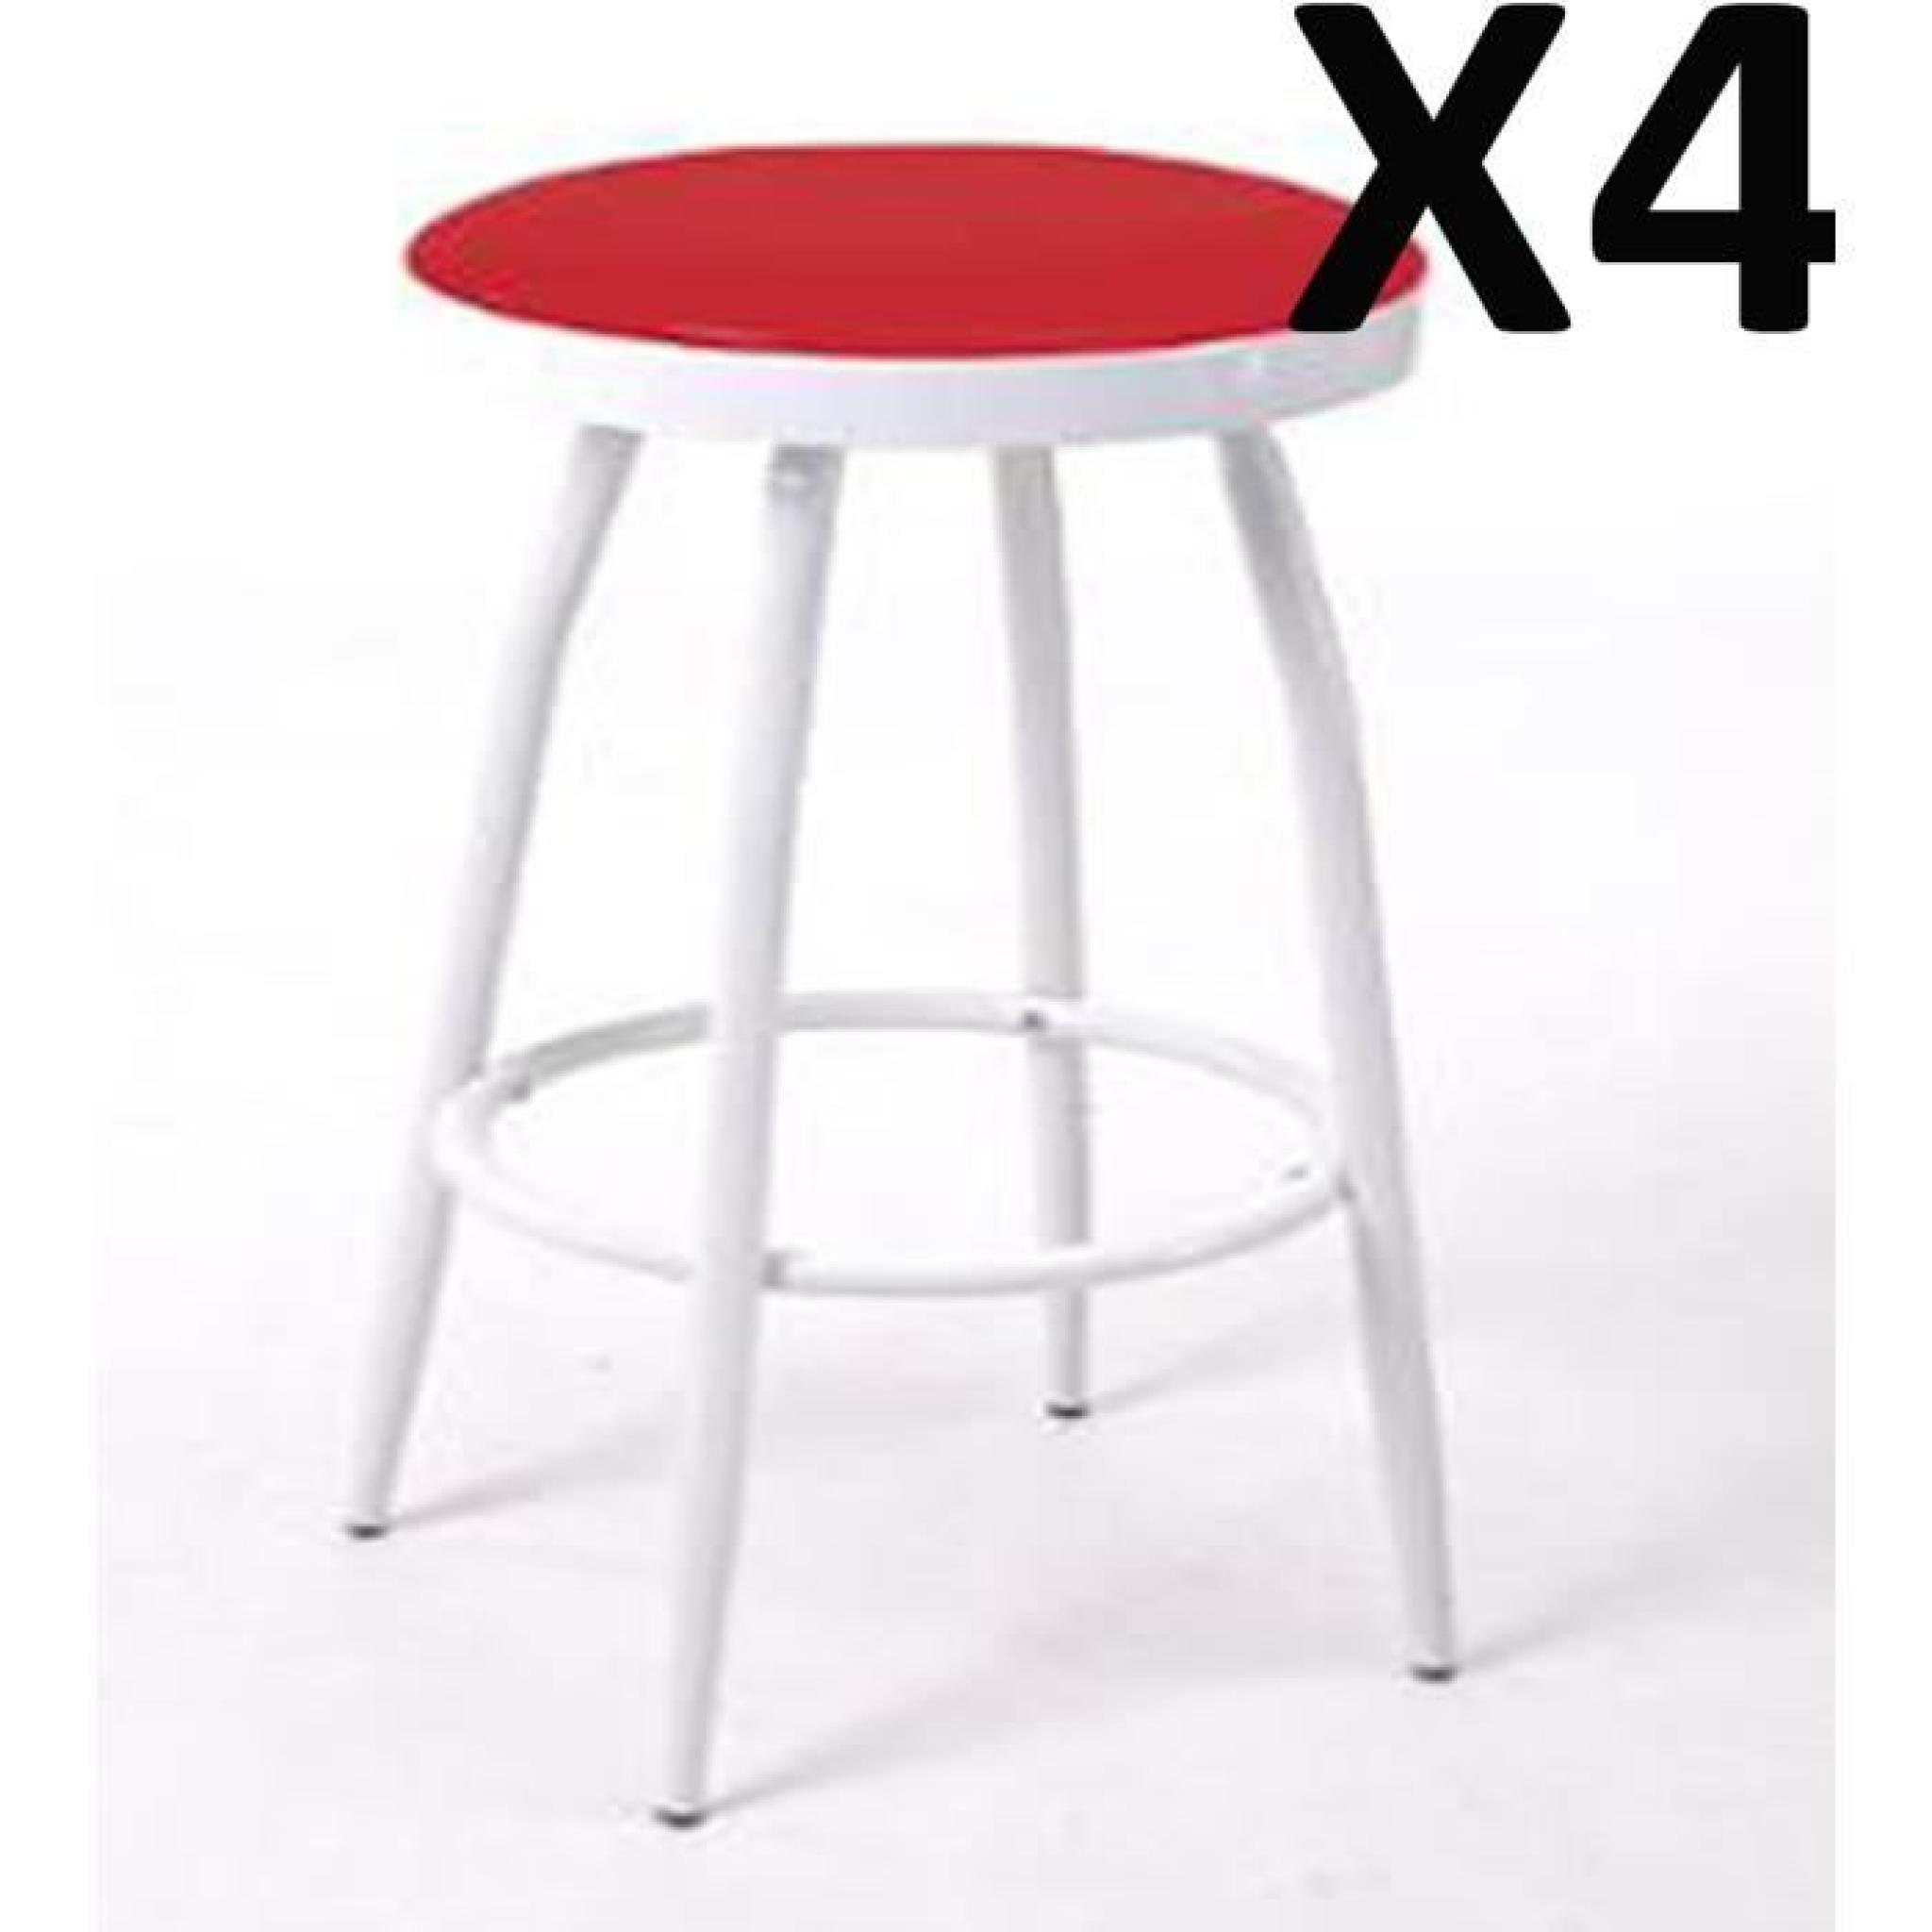 lot de 4 tabourets de bar rouge h 78 x d 36 cm achat. Black Bedroom Furniture Sets. Home Design Ideas